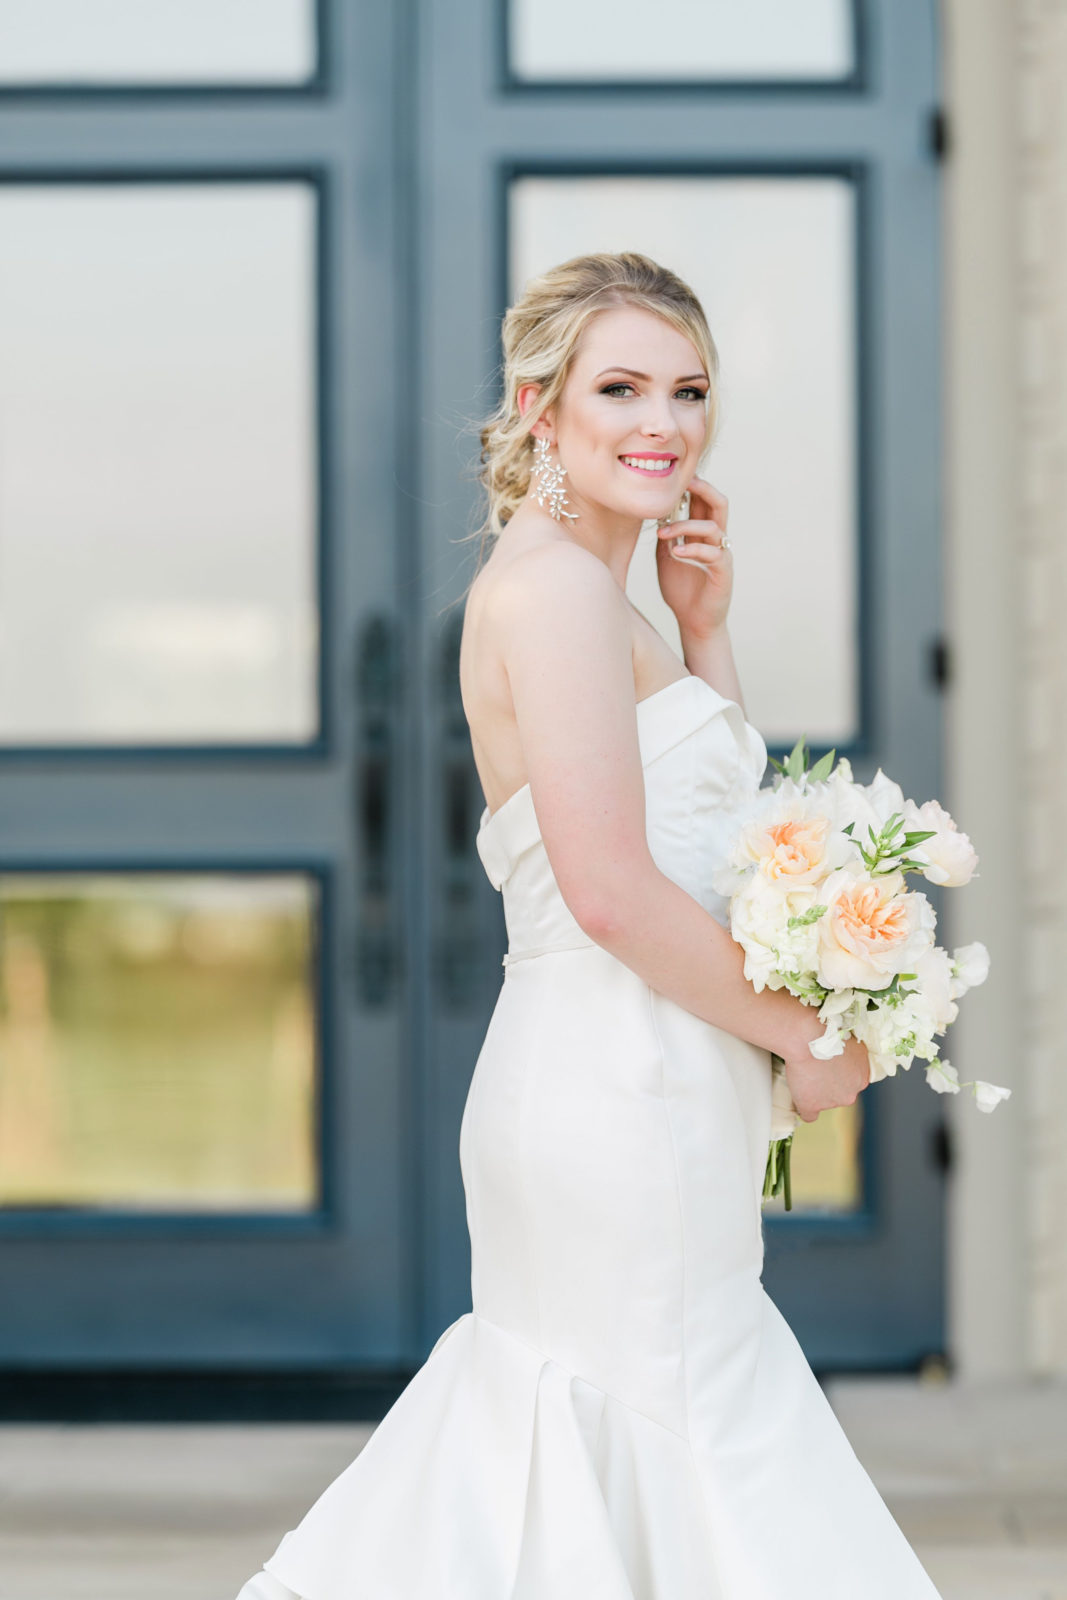 Chic bridal gown: Sophisticated and Chic wedding inspiration on Alexa Kay Events